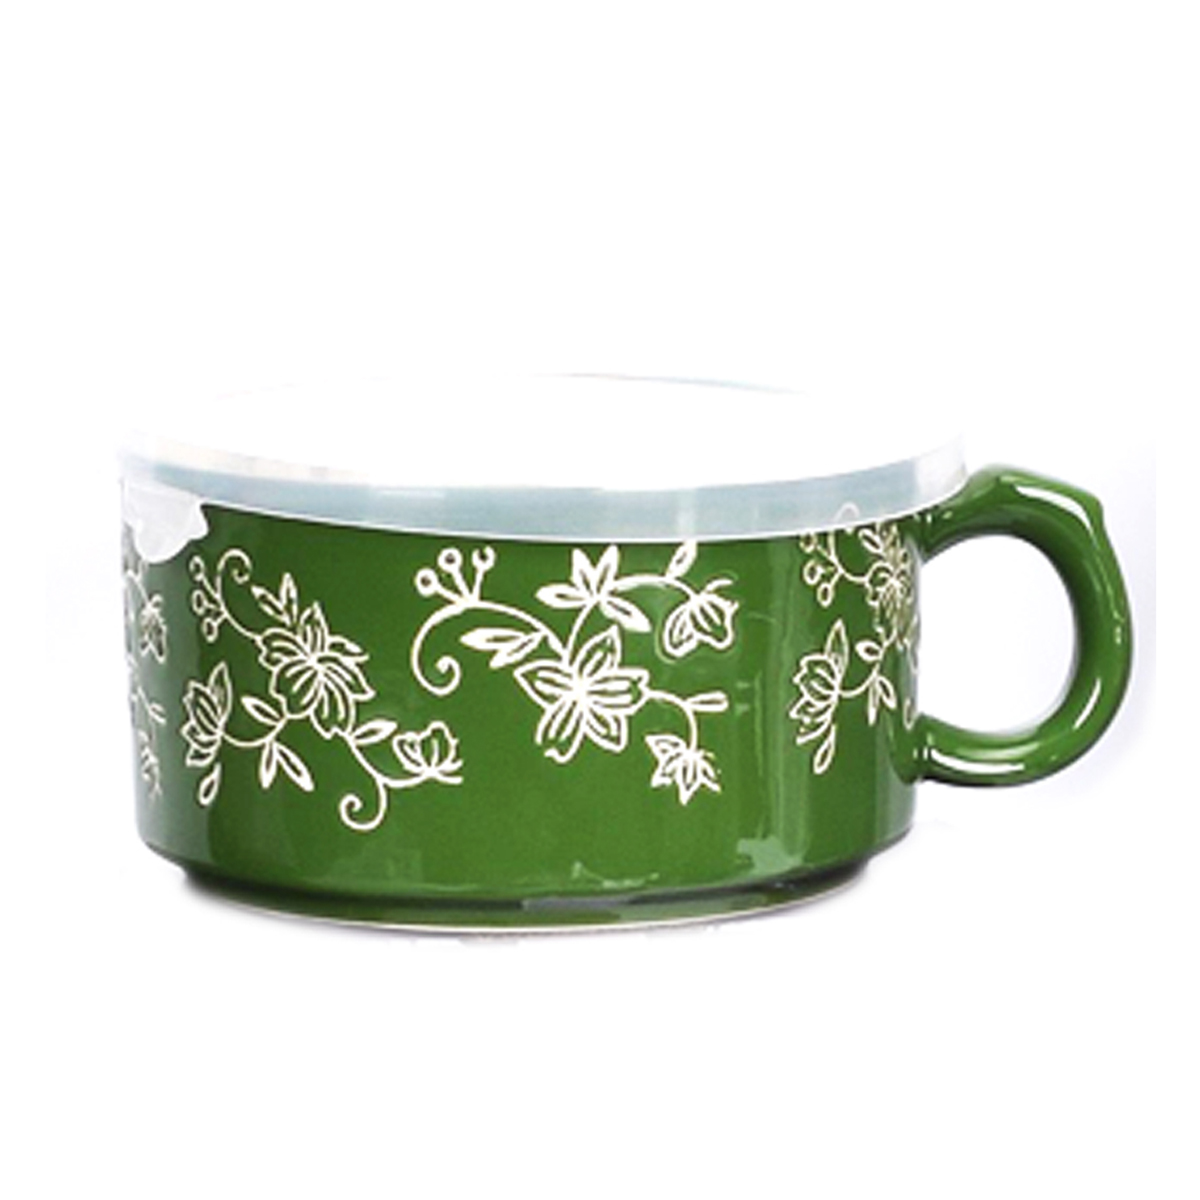 temp-tations® Floral Lace Meal Mug with Gift Box – Green